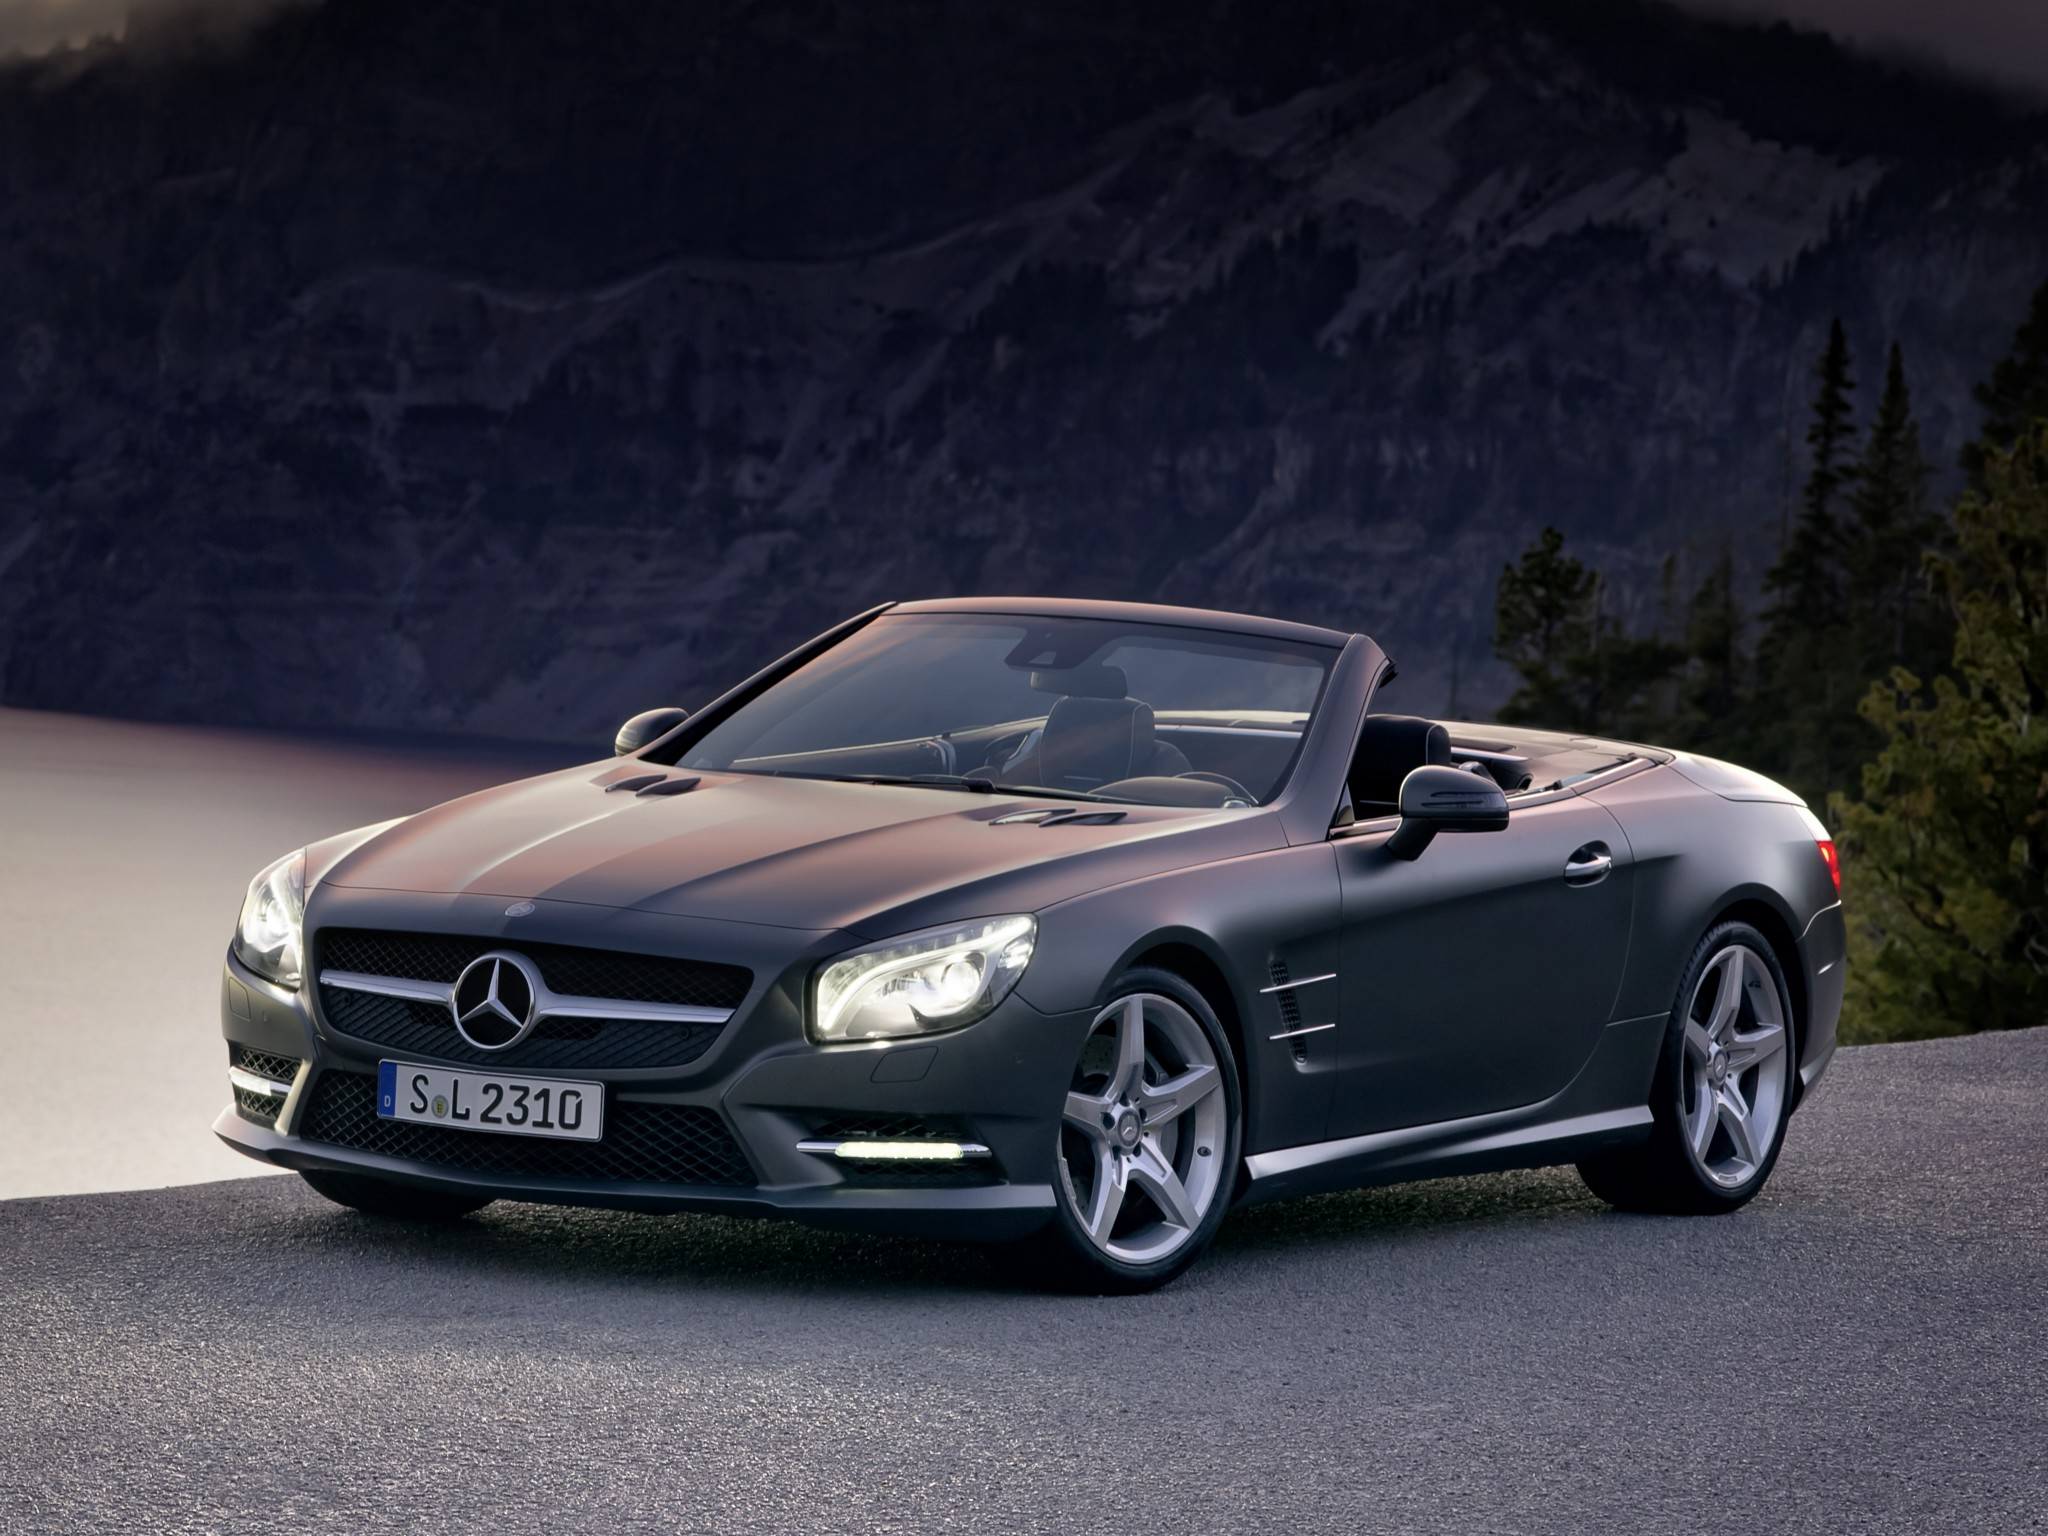 mercedes sl klasse 500 amg sports package r231 2012. Black Bedroom Furniture Sets. Home Design Ideas